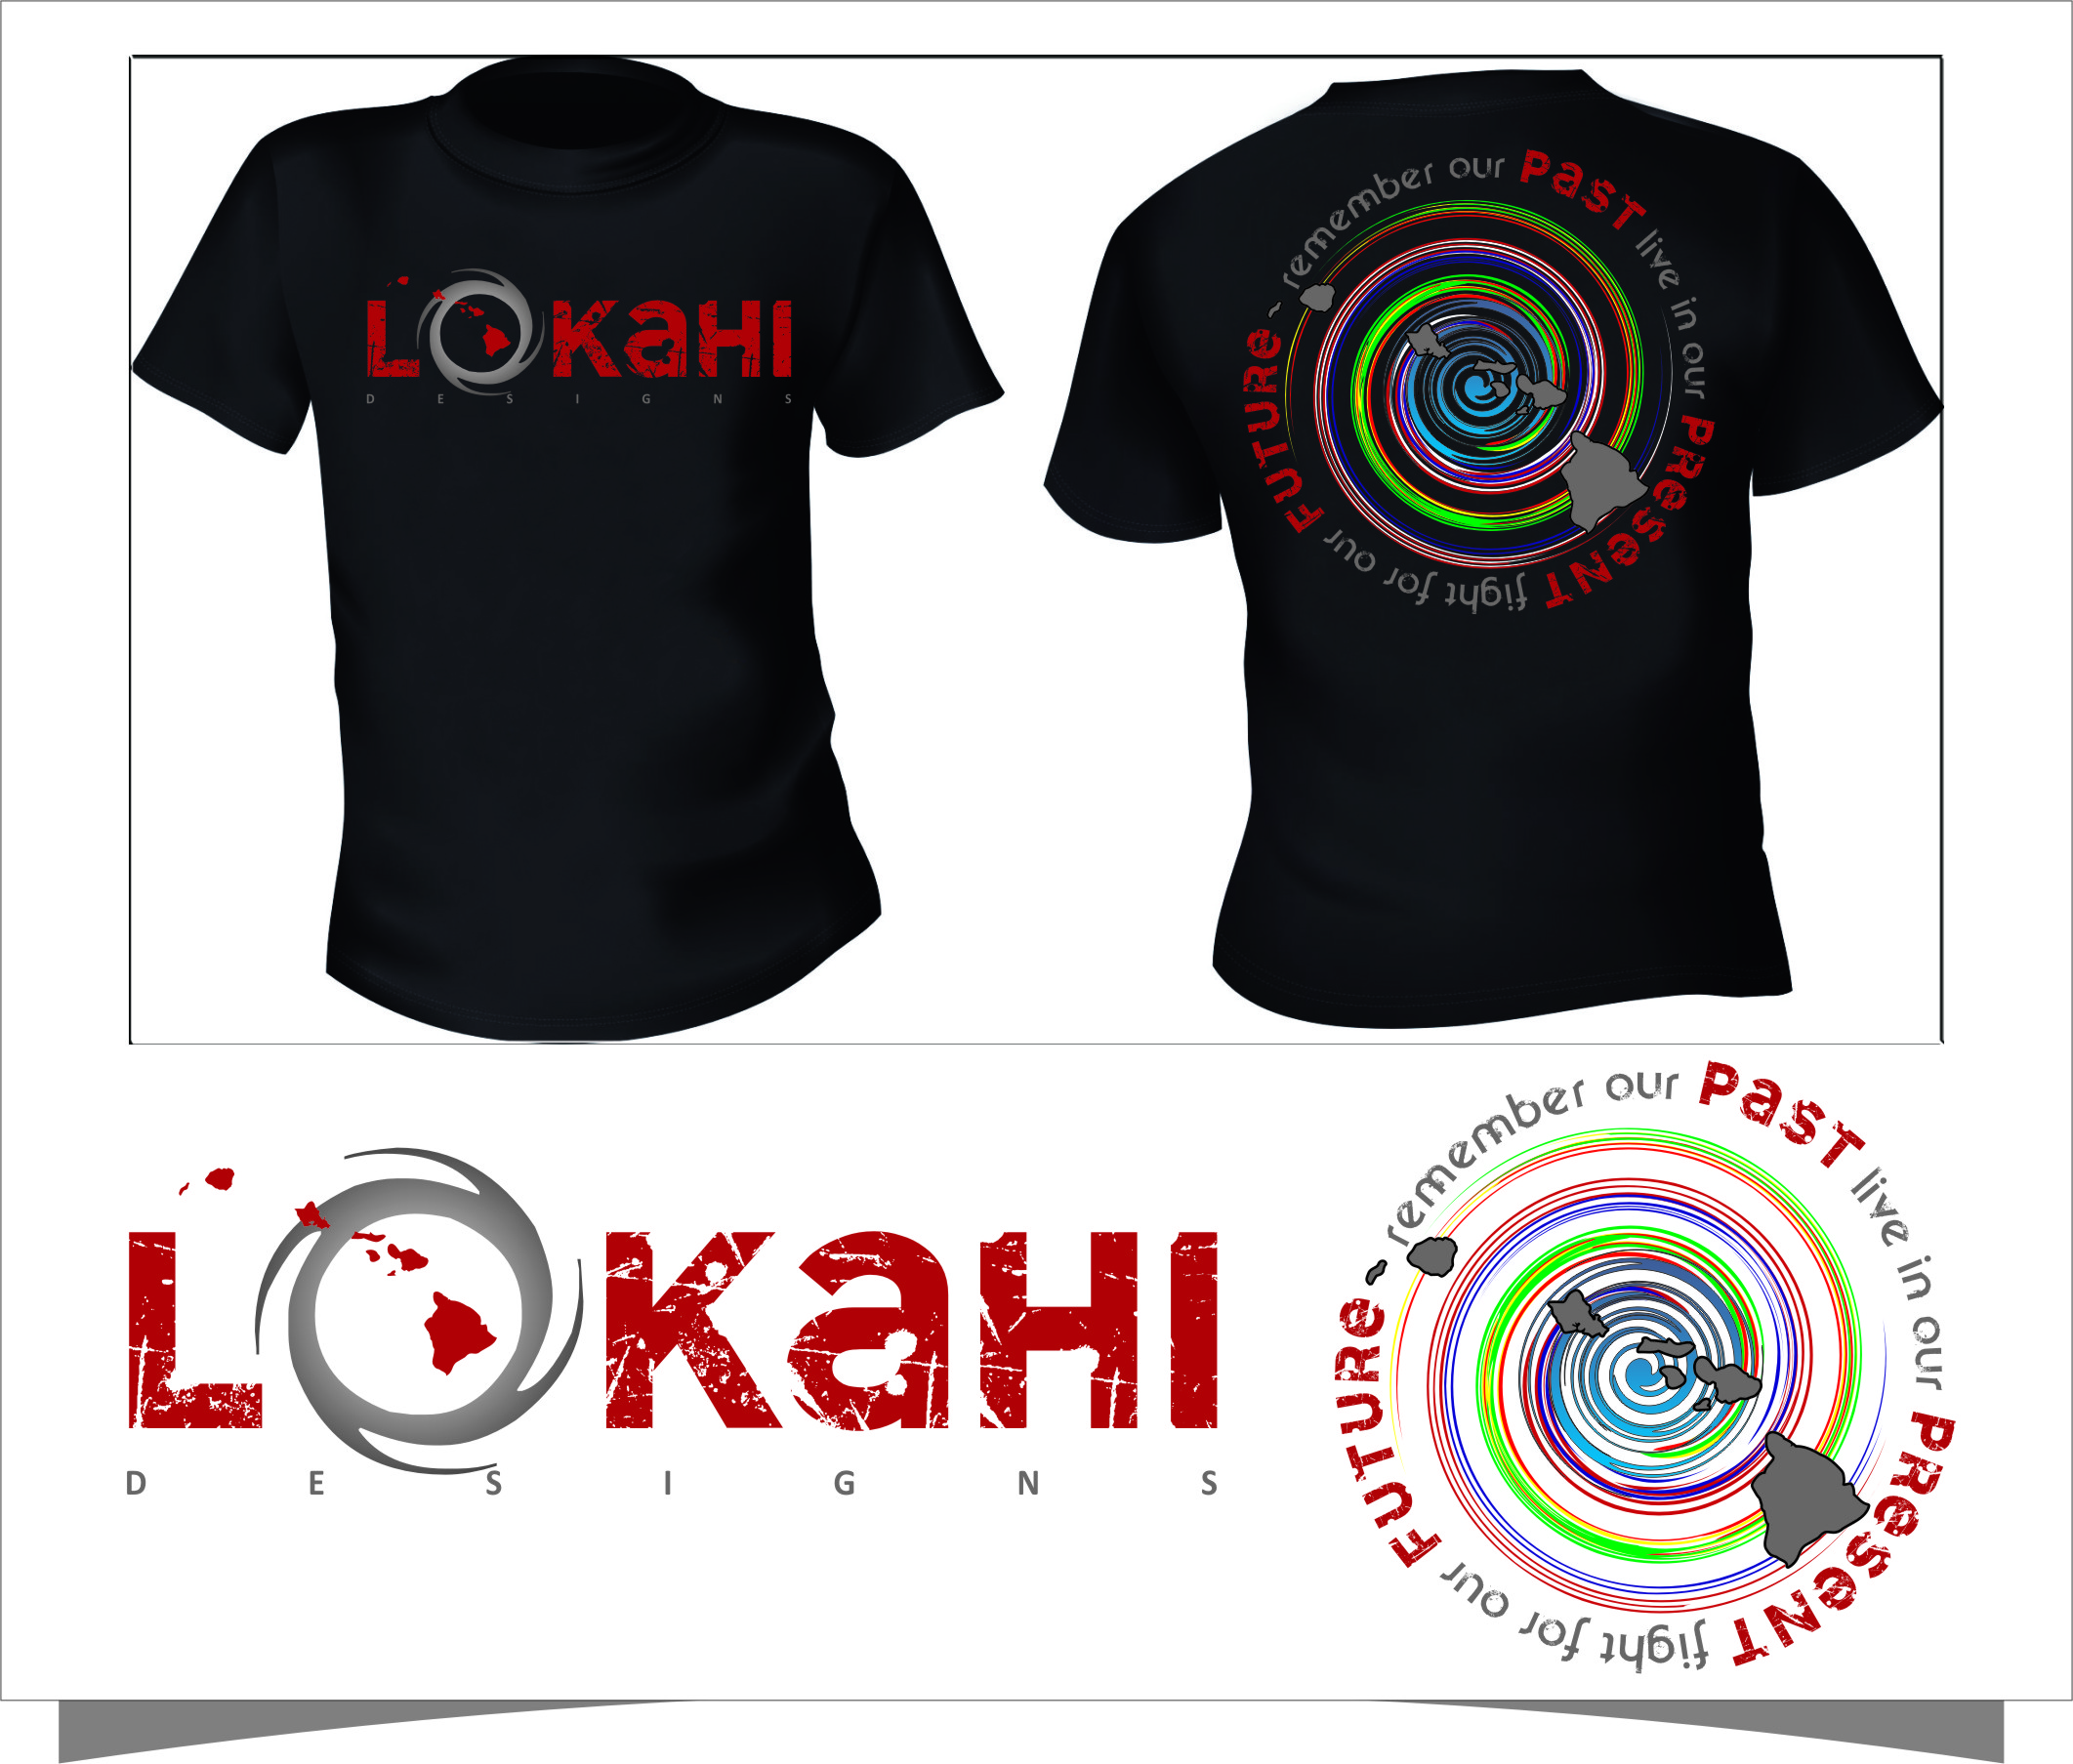 Clothing Design by Ngepet_art - Entry No. 59 in the Clothing Design Contest Creative Clothing Design for LOKAHI designs.